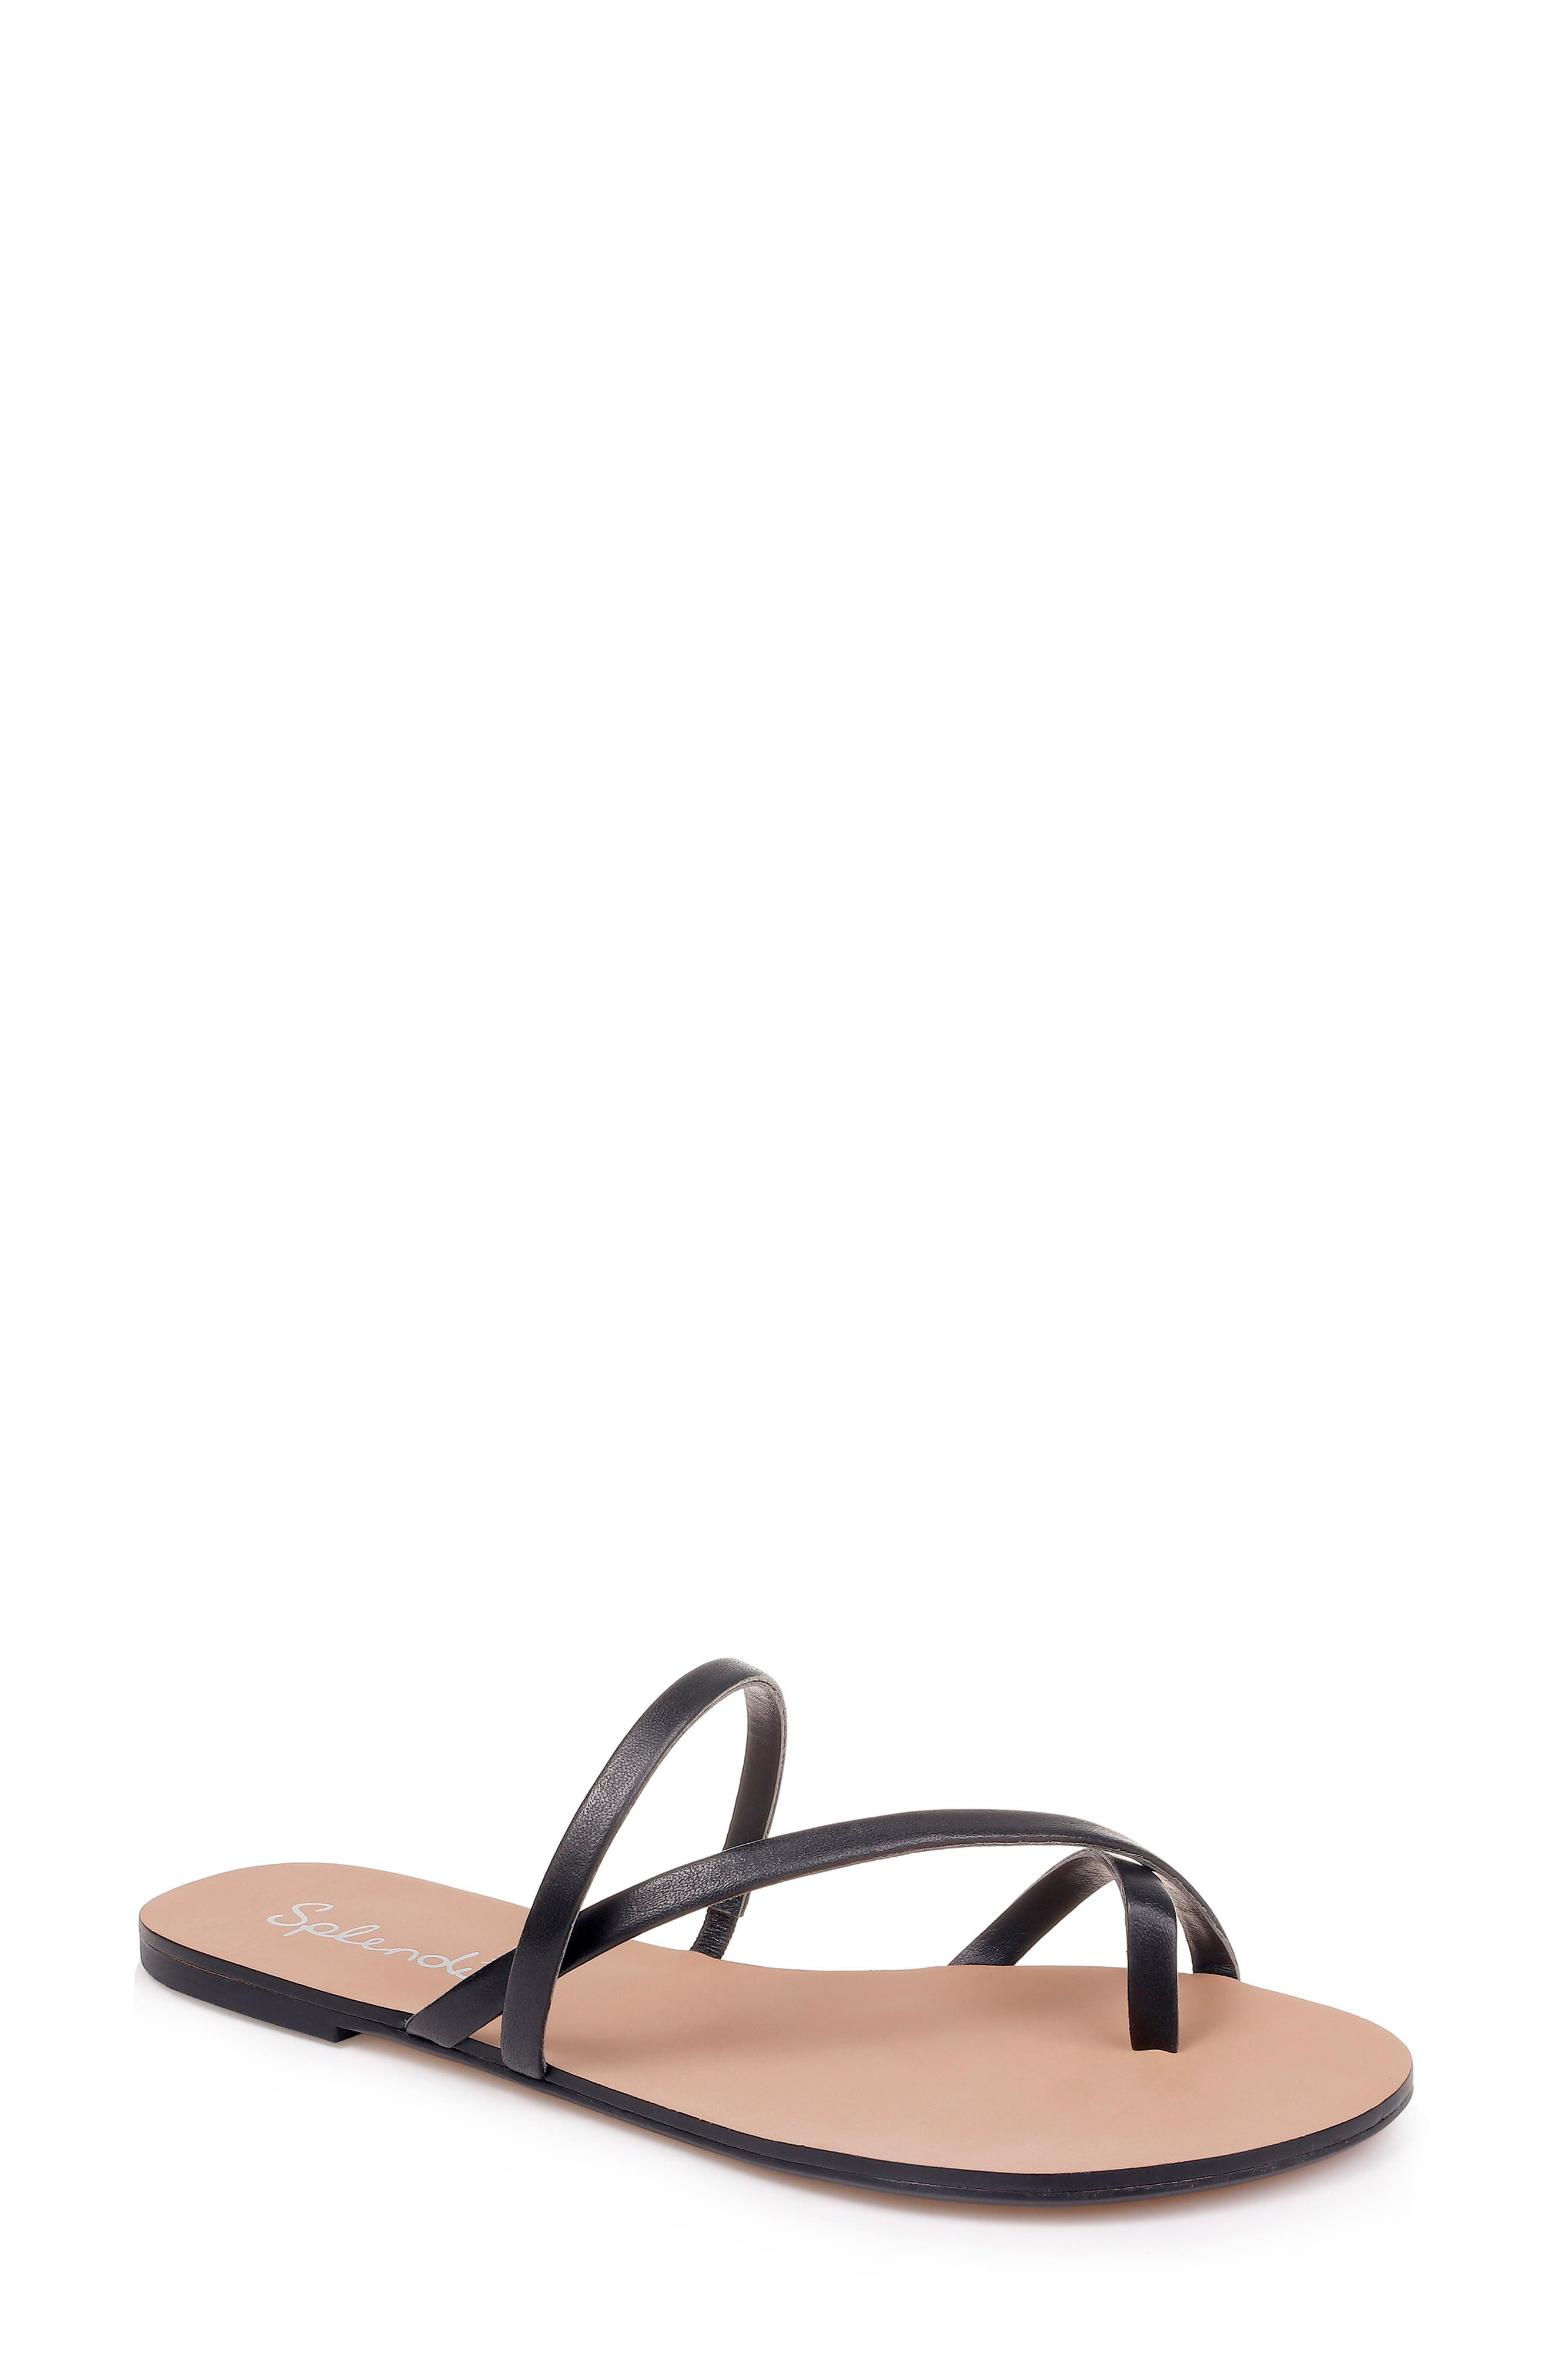 SPLENDID Trenton Strappy Slide Sandal, Main, color, BLACK LEATHER